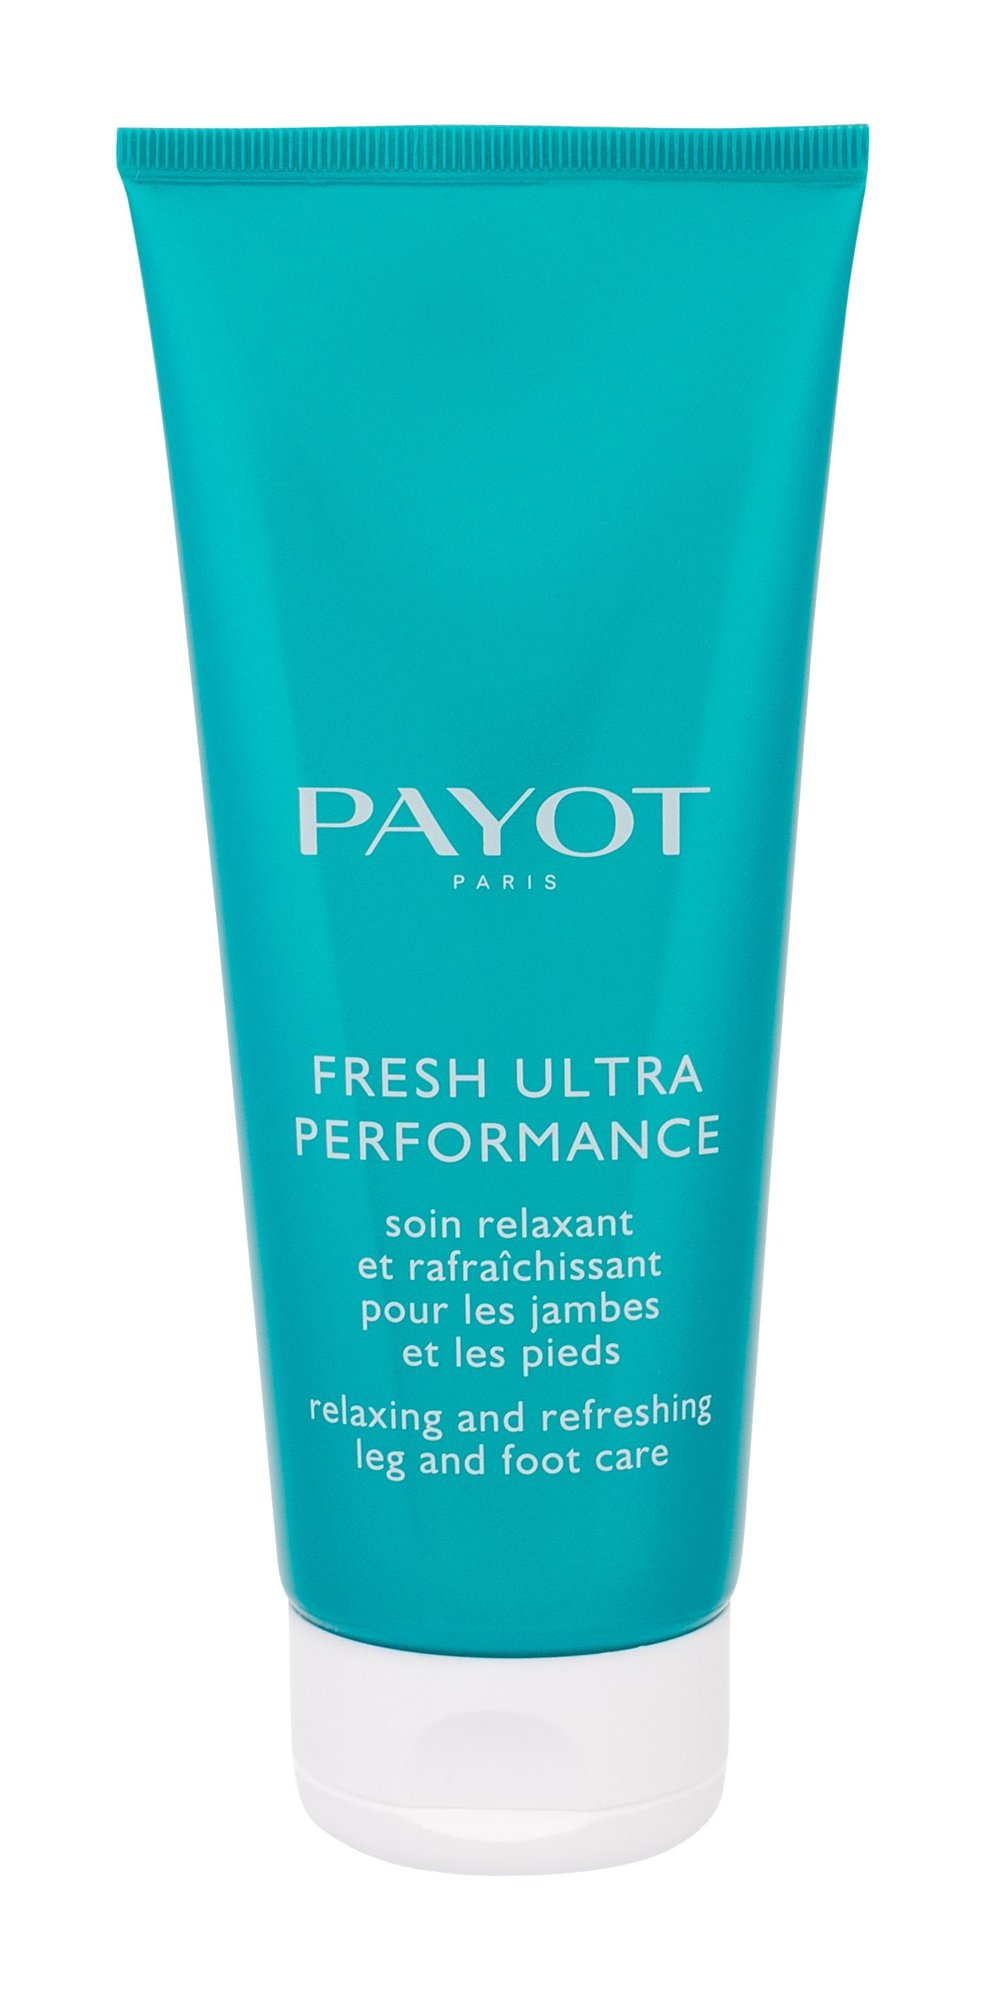 PAYOT Le Corps Cosmetic 200ml